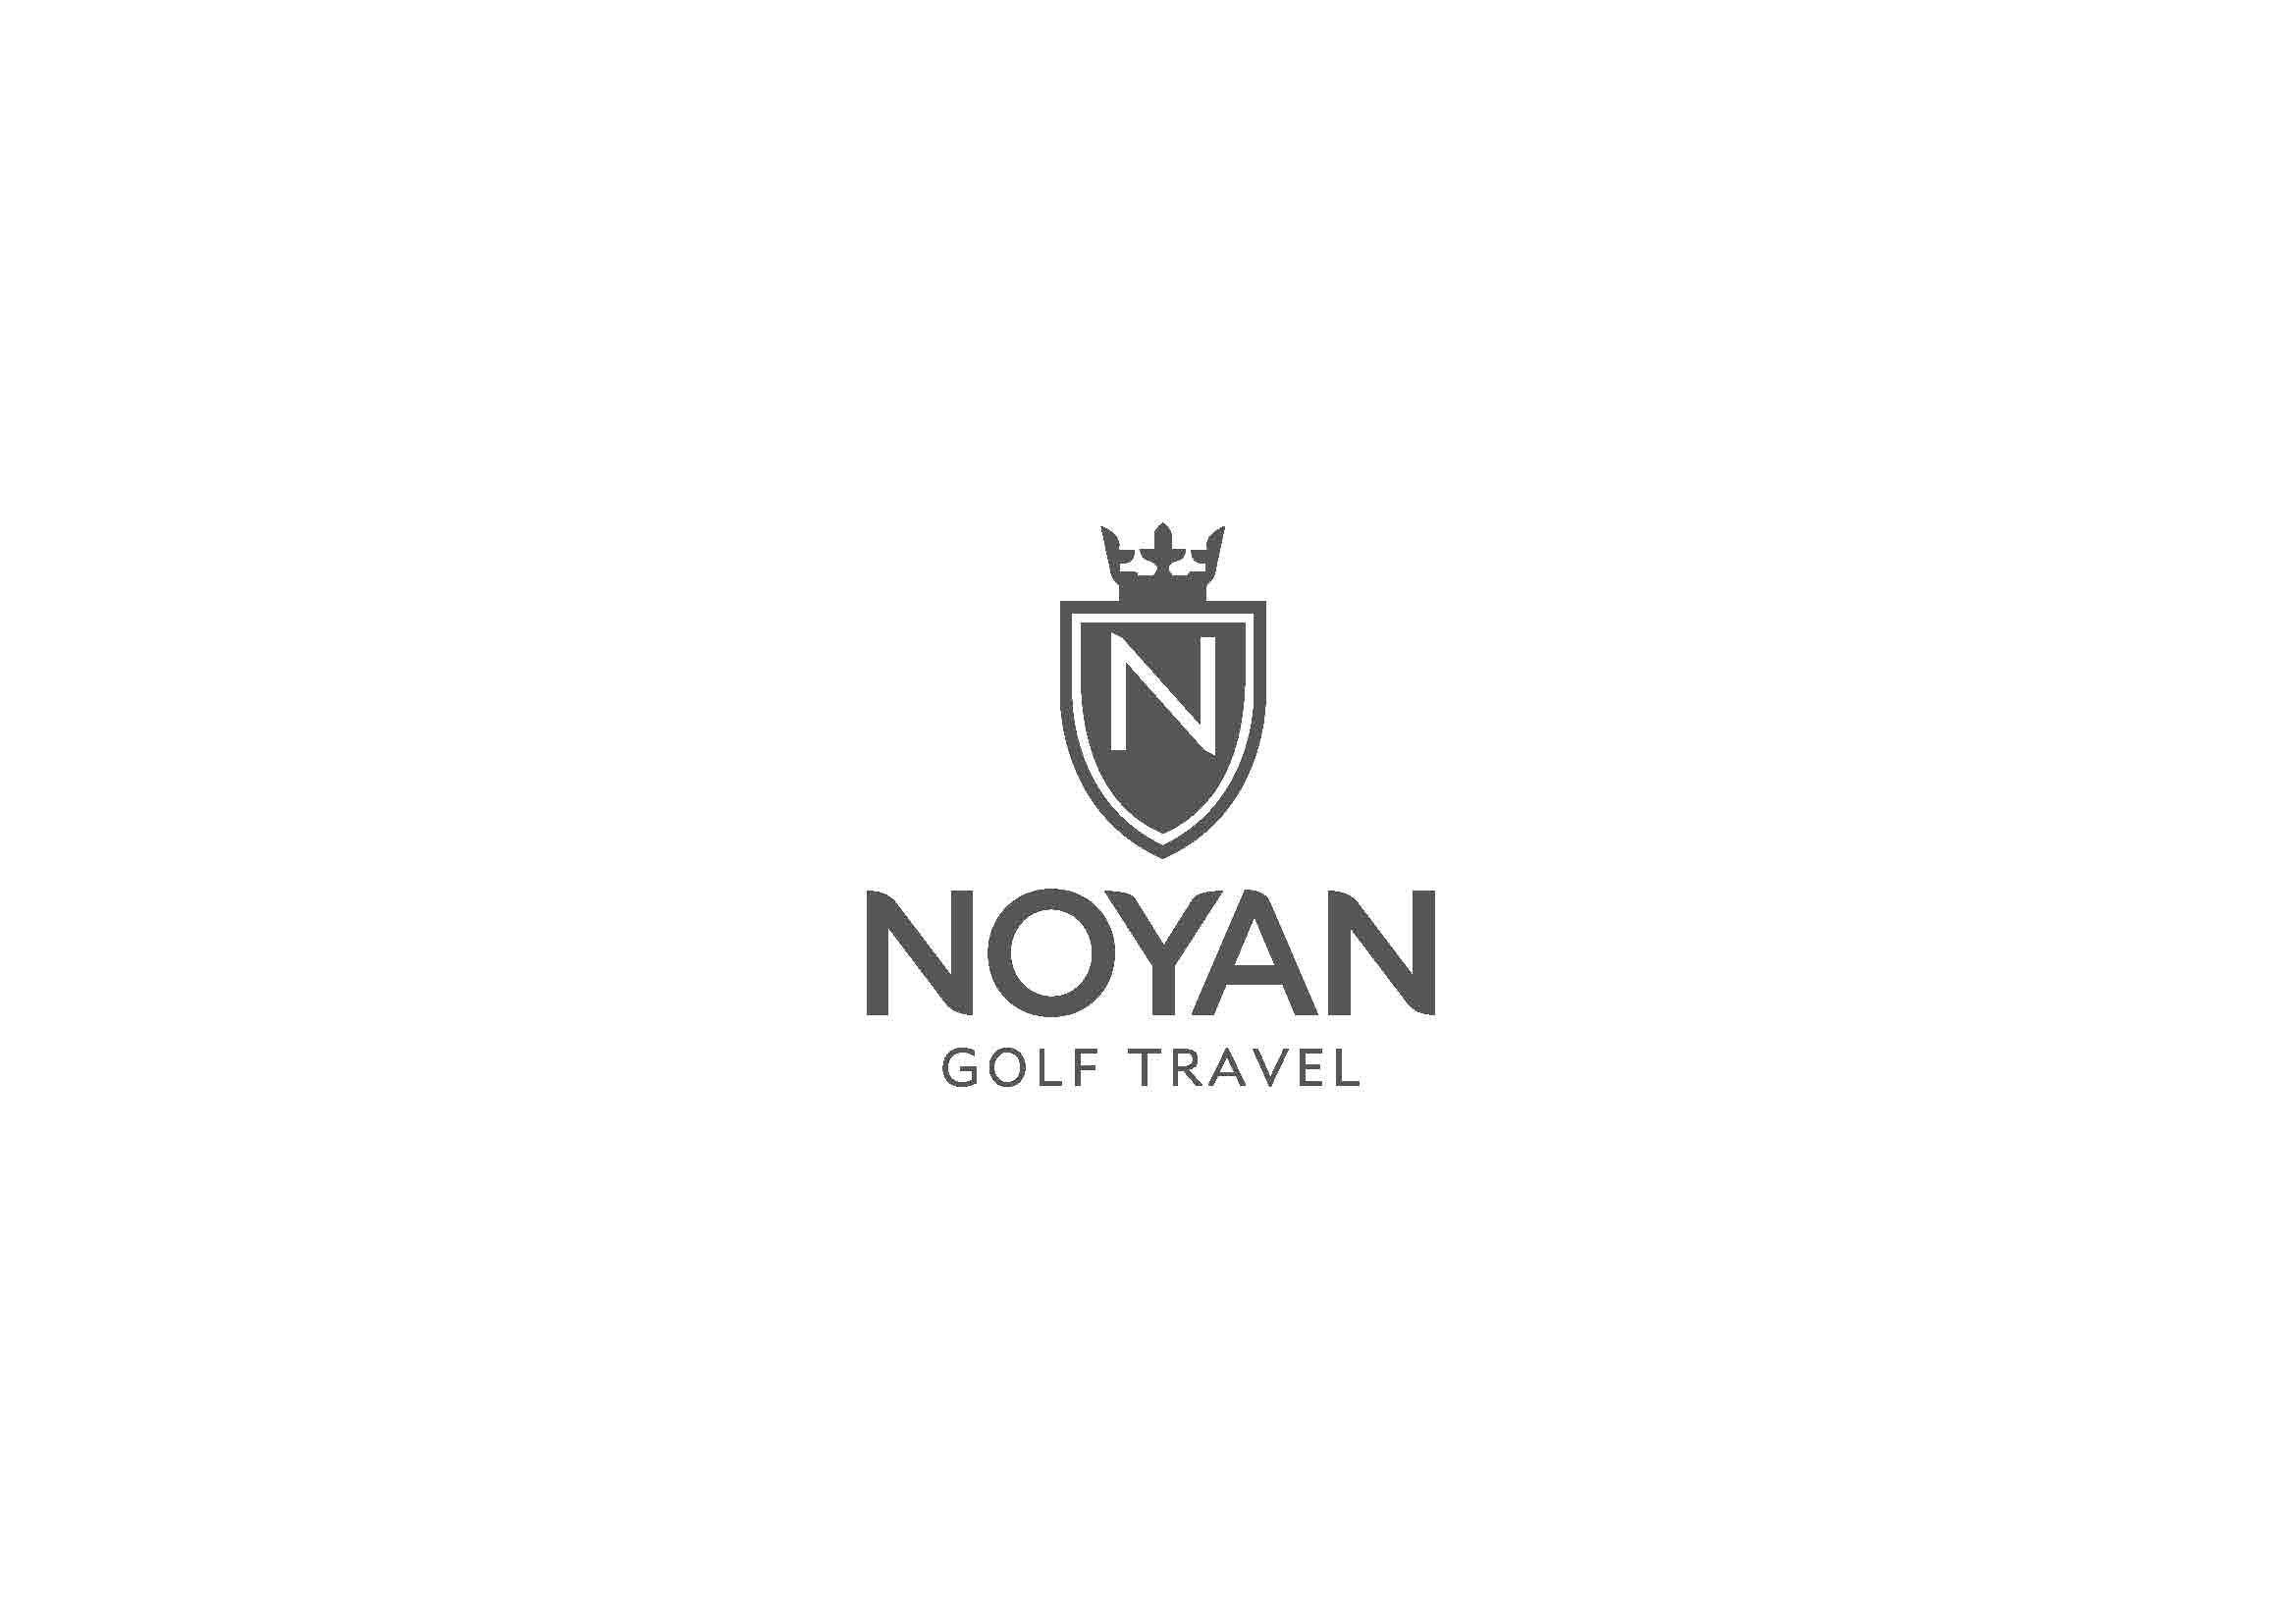 NOYAN GOLF TRAVEL